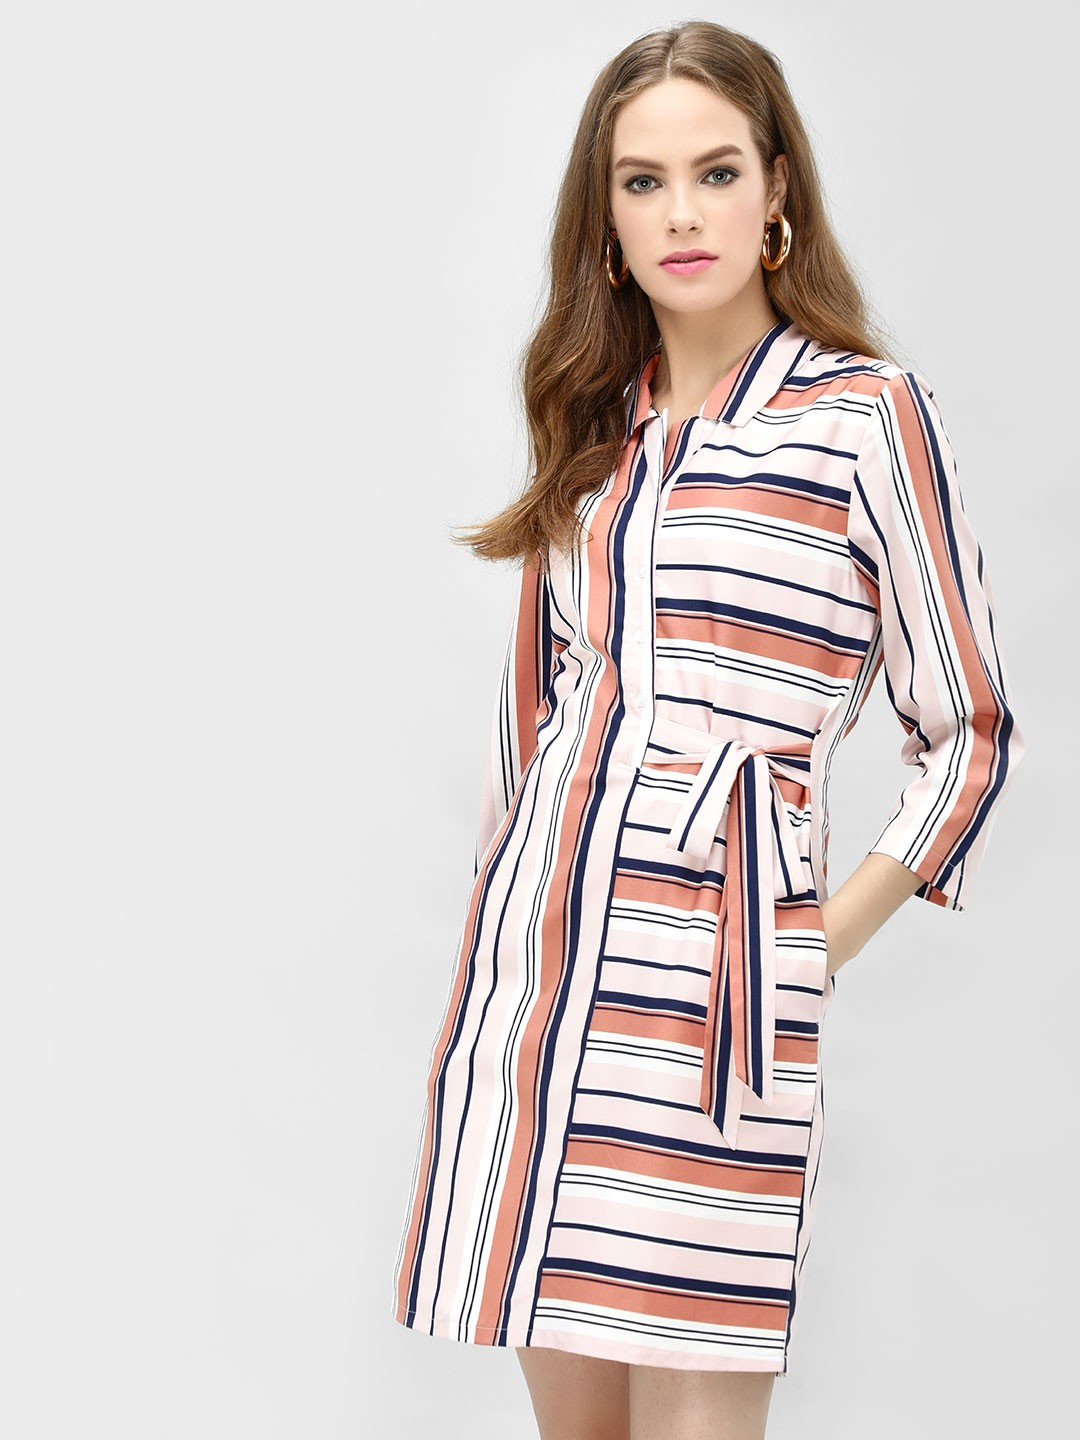 PostFold Pink/White Contrast Striped Tie-Up Shirt Dress 1